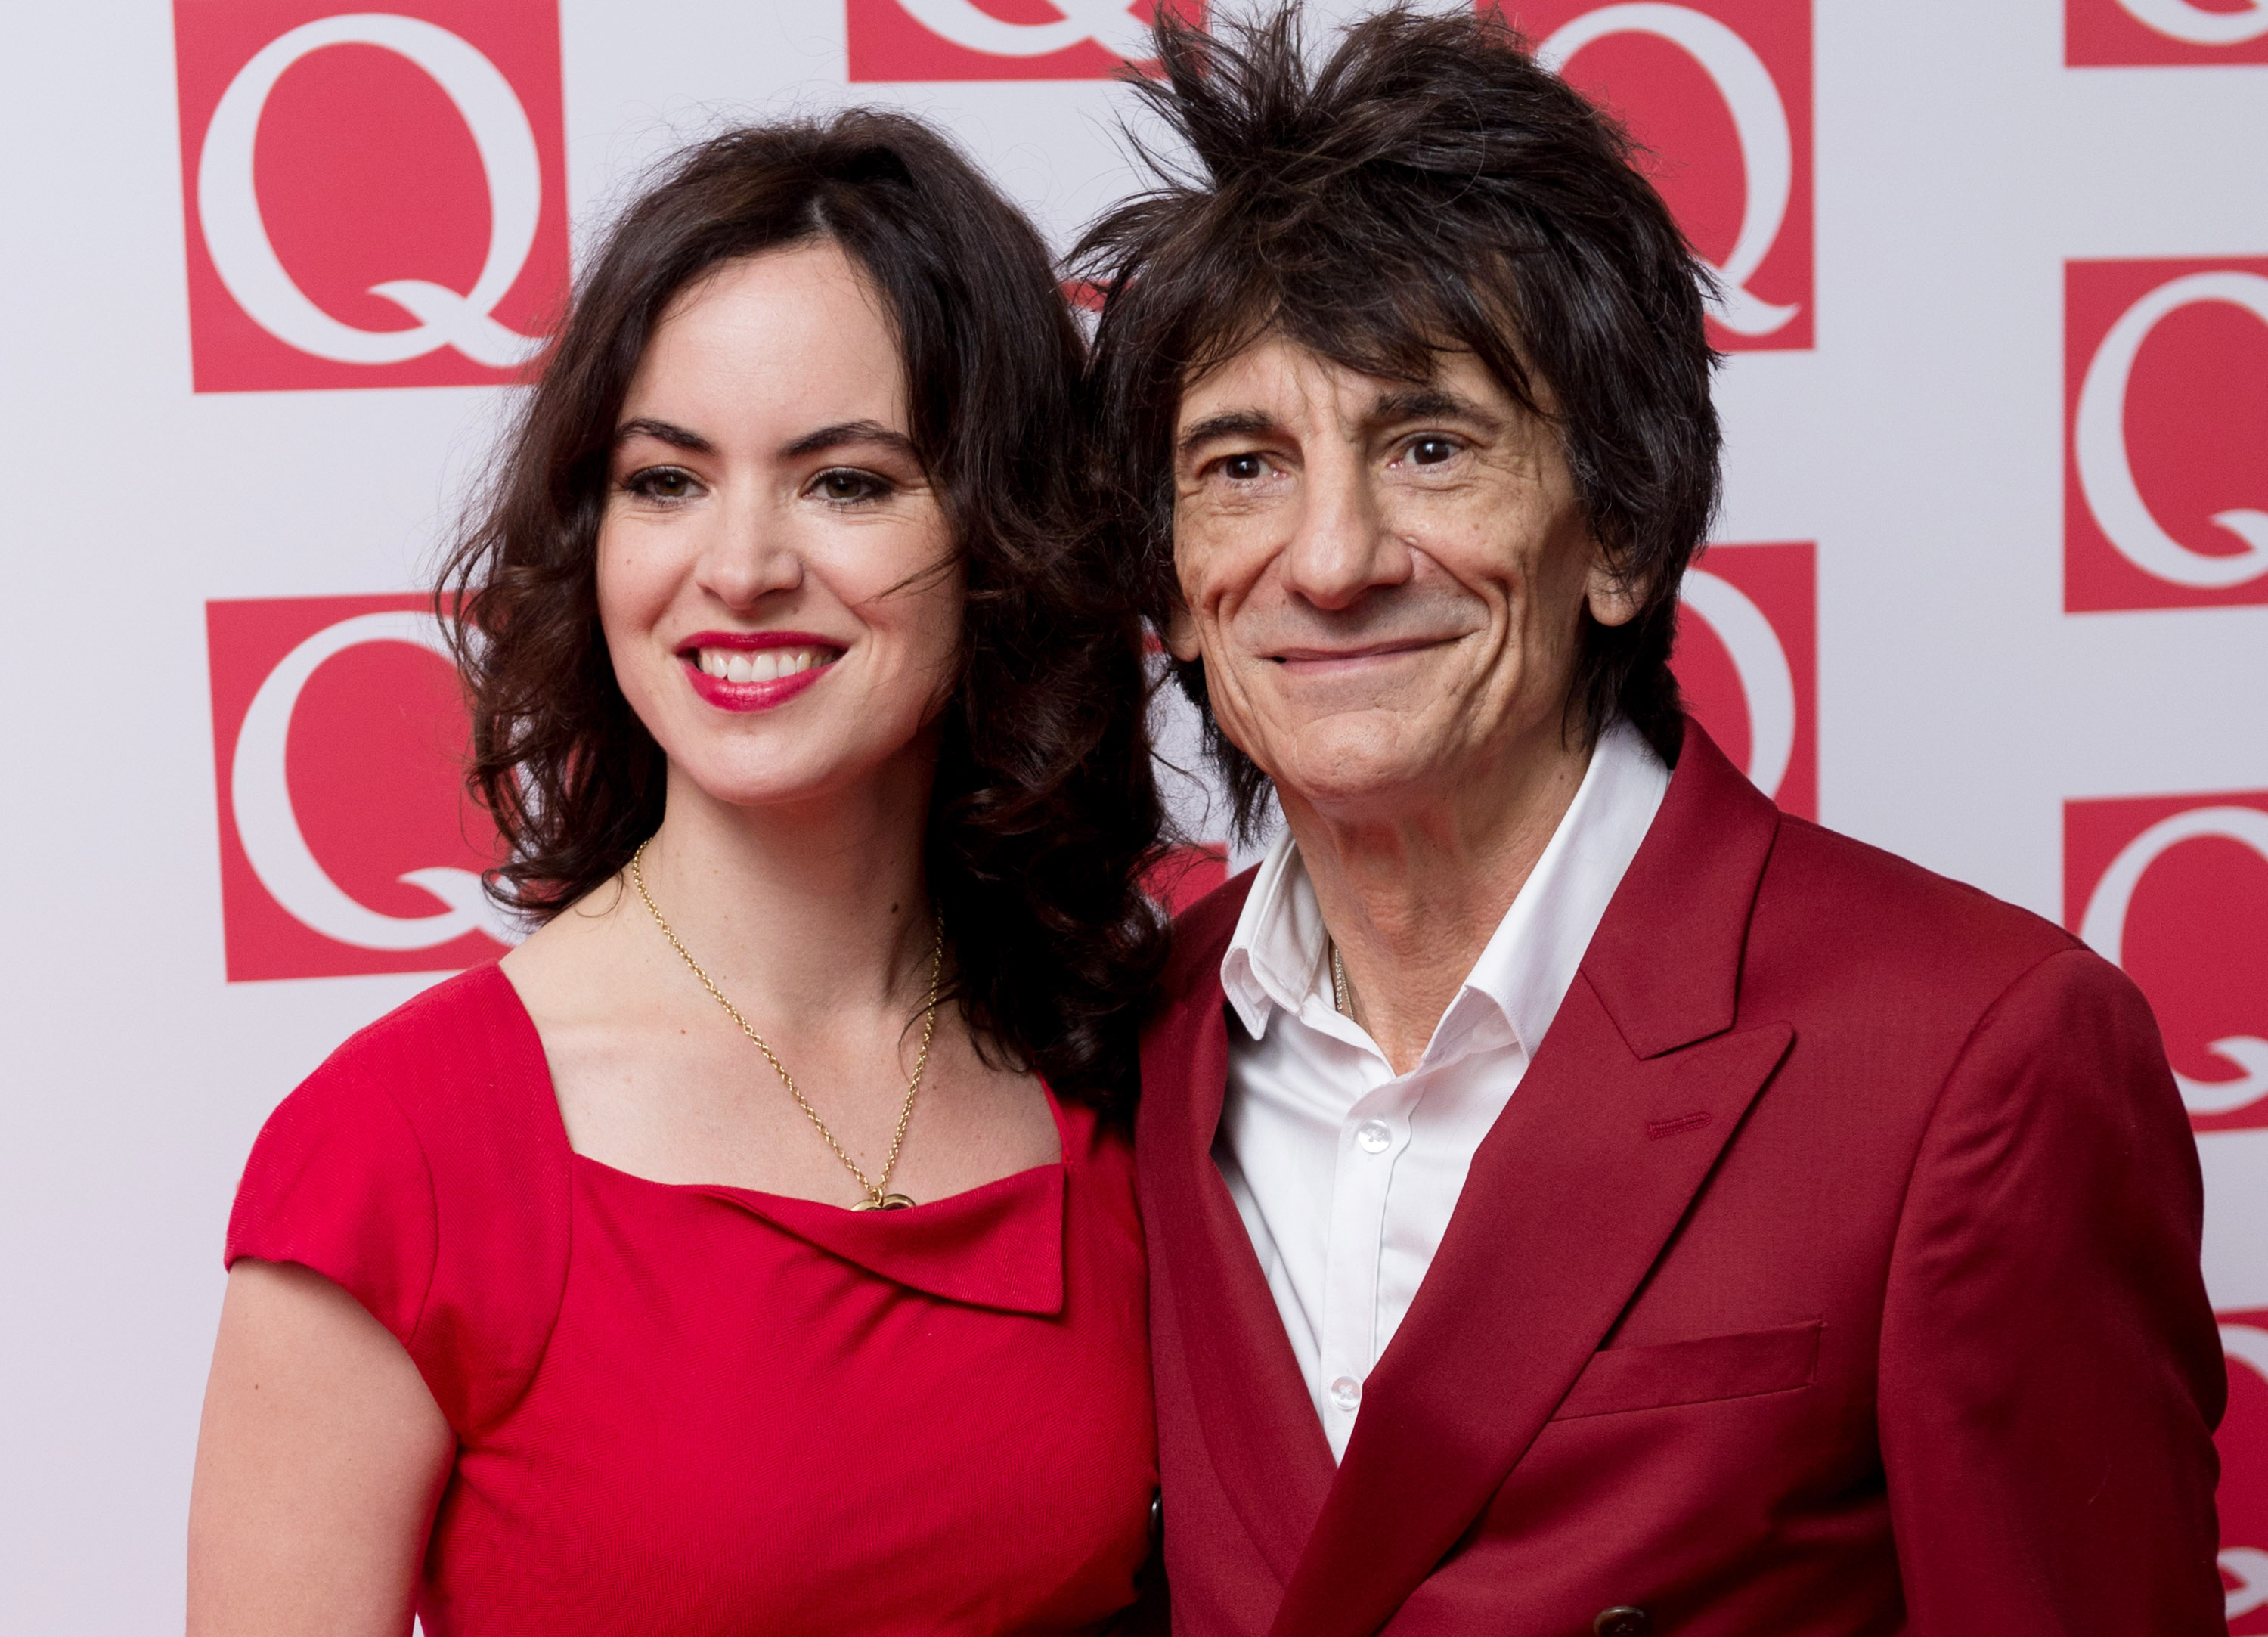 Rolling Stones star Ronnie Wood, 68, 'to become a father of twins'